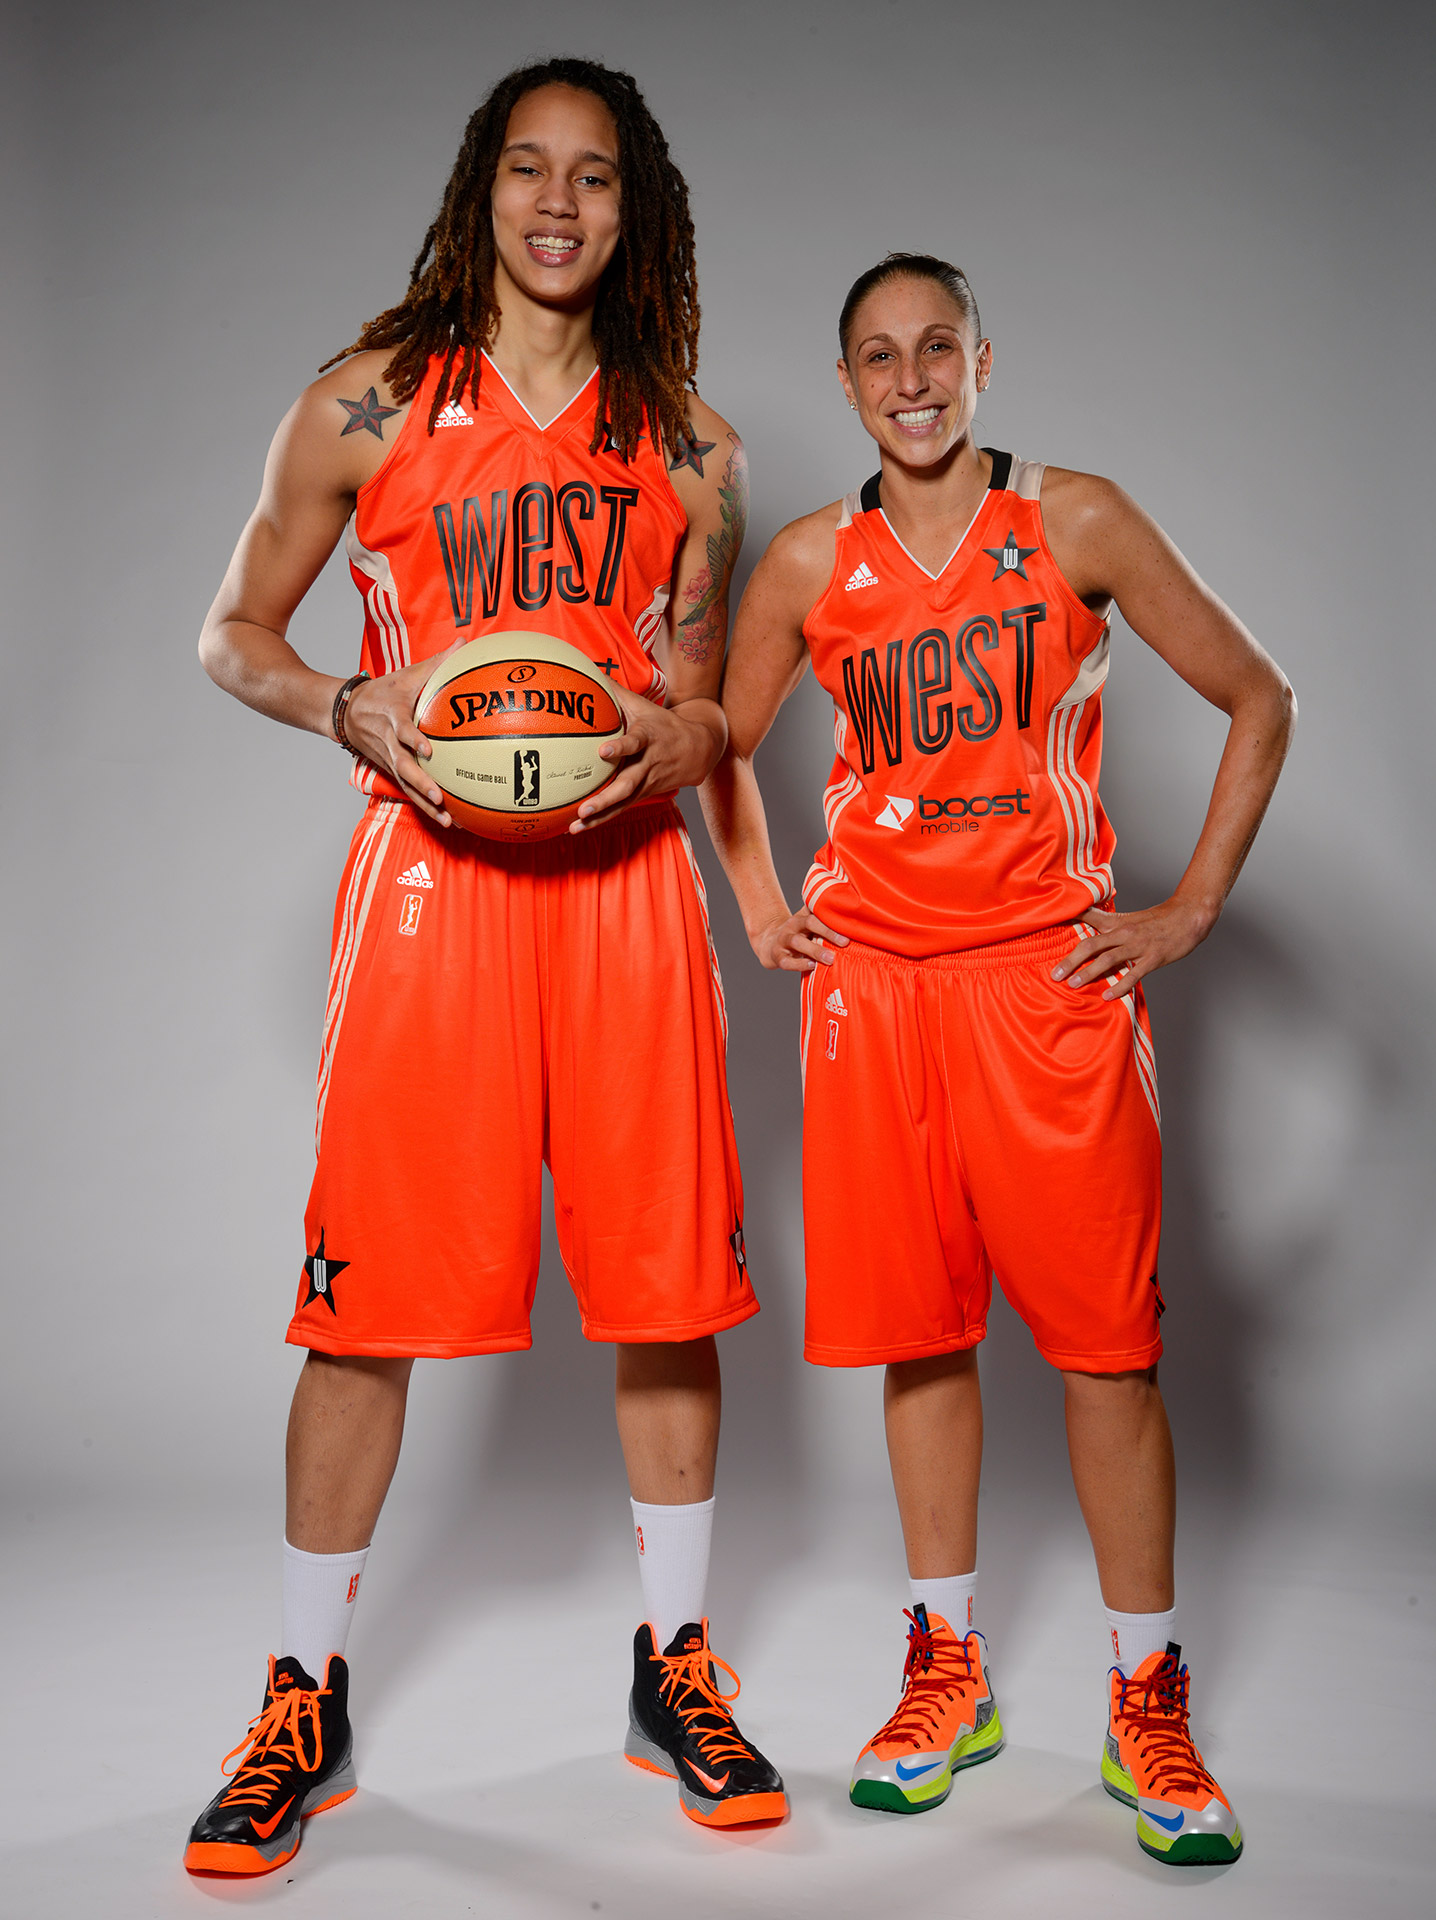 Brittney Griner and Diana Taurasi were both voted Western Conference starters for the 2013 WNBA All-Star Game, but Griner was unable to play because of an injured knee.